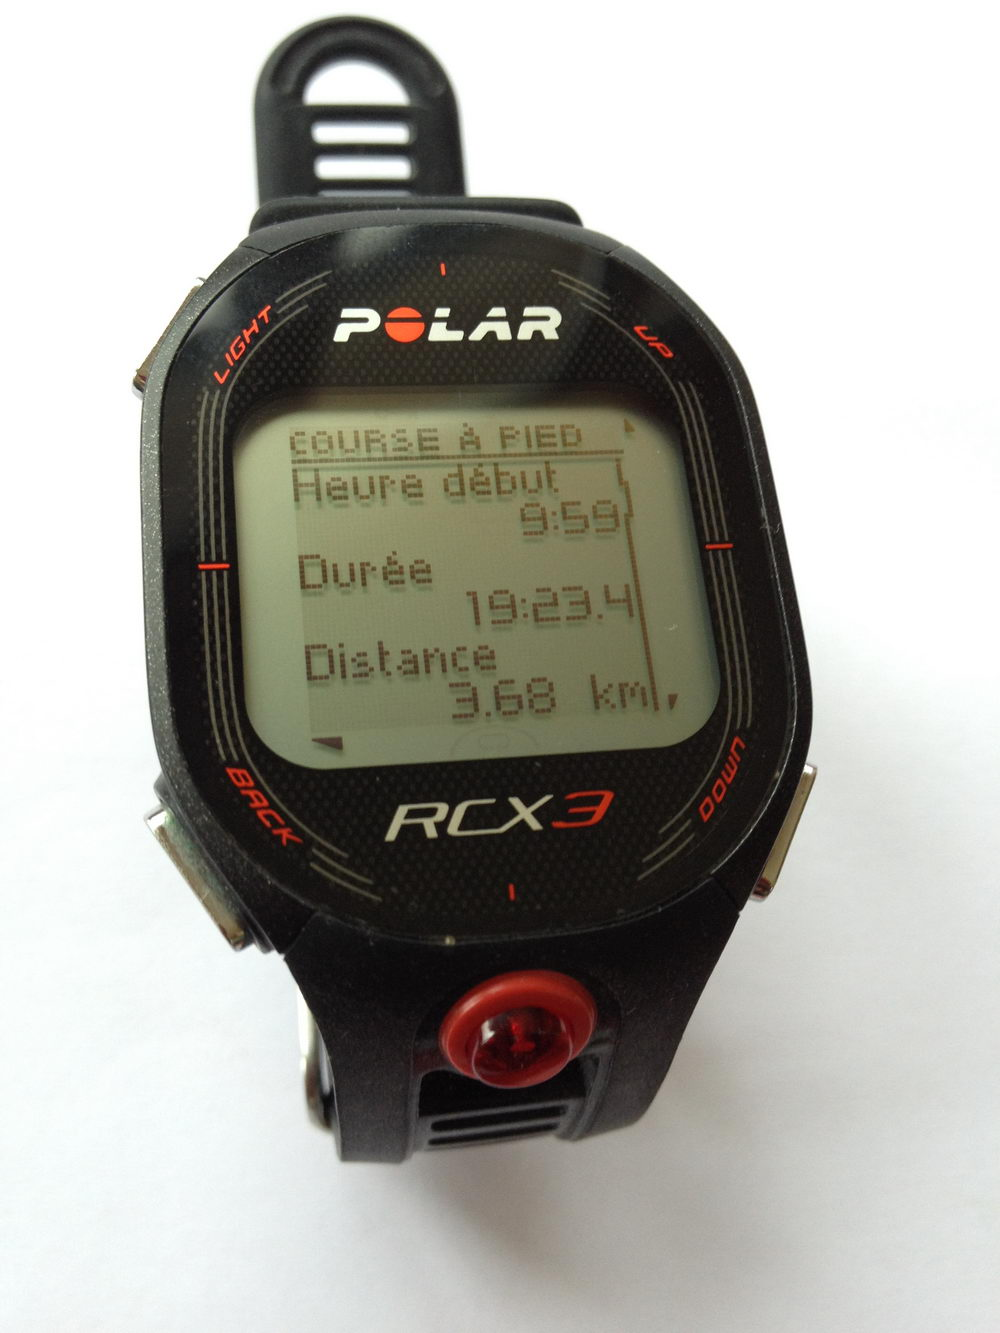 Montre Polar RCX3 affichant distance mesurée